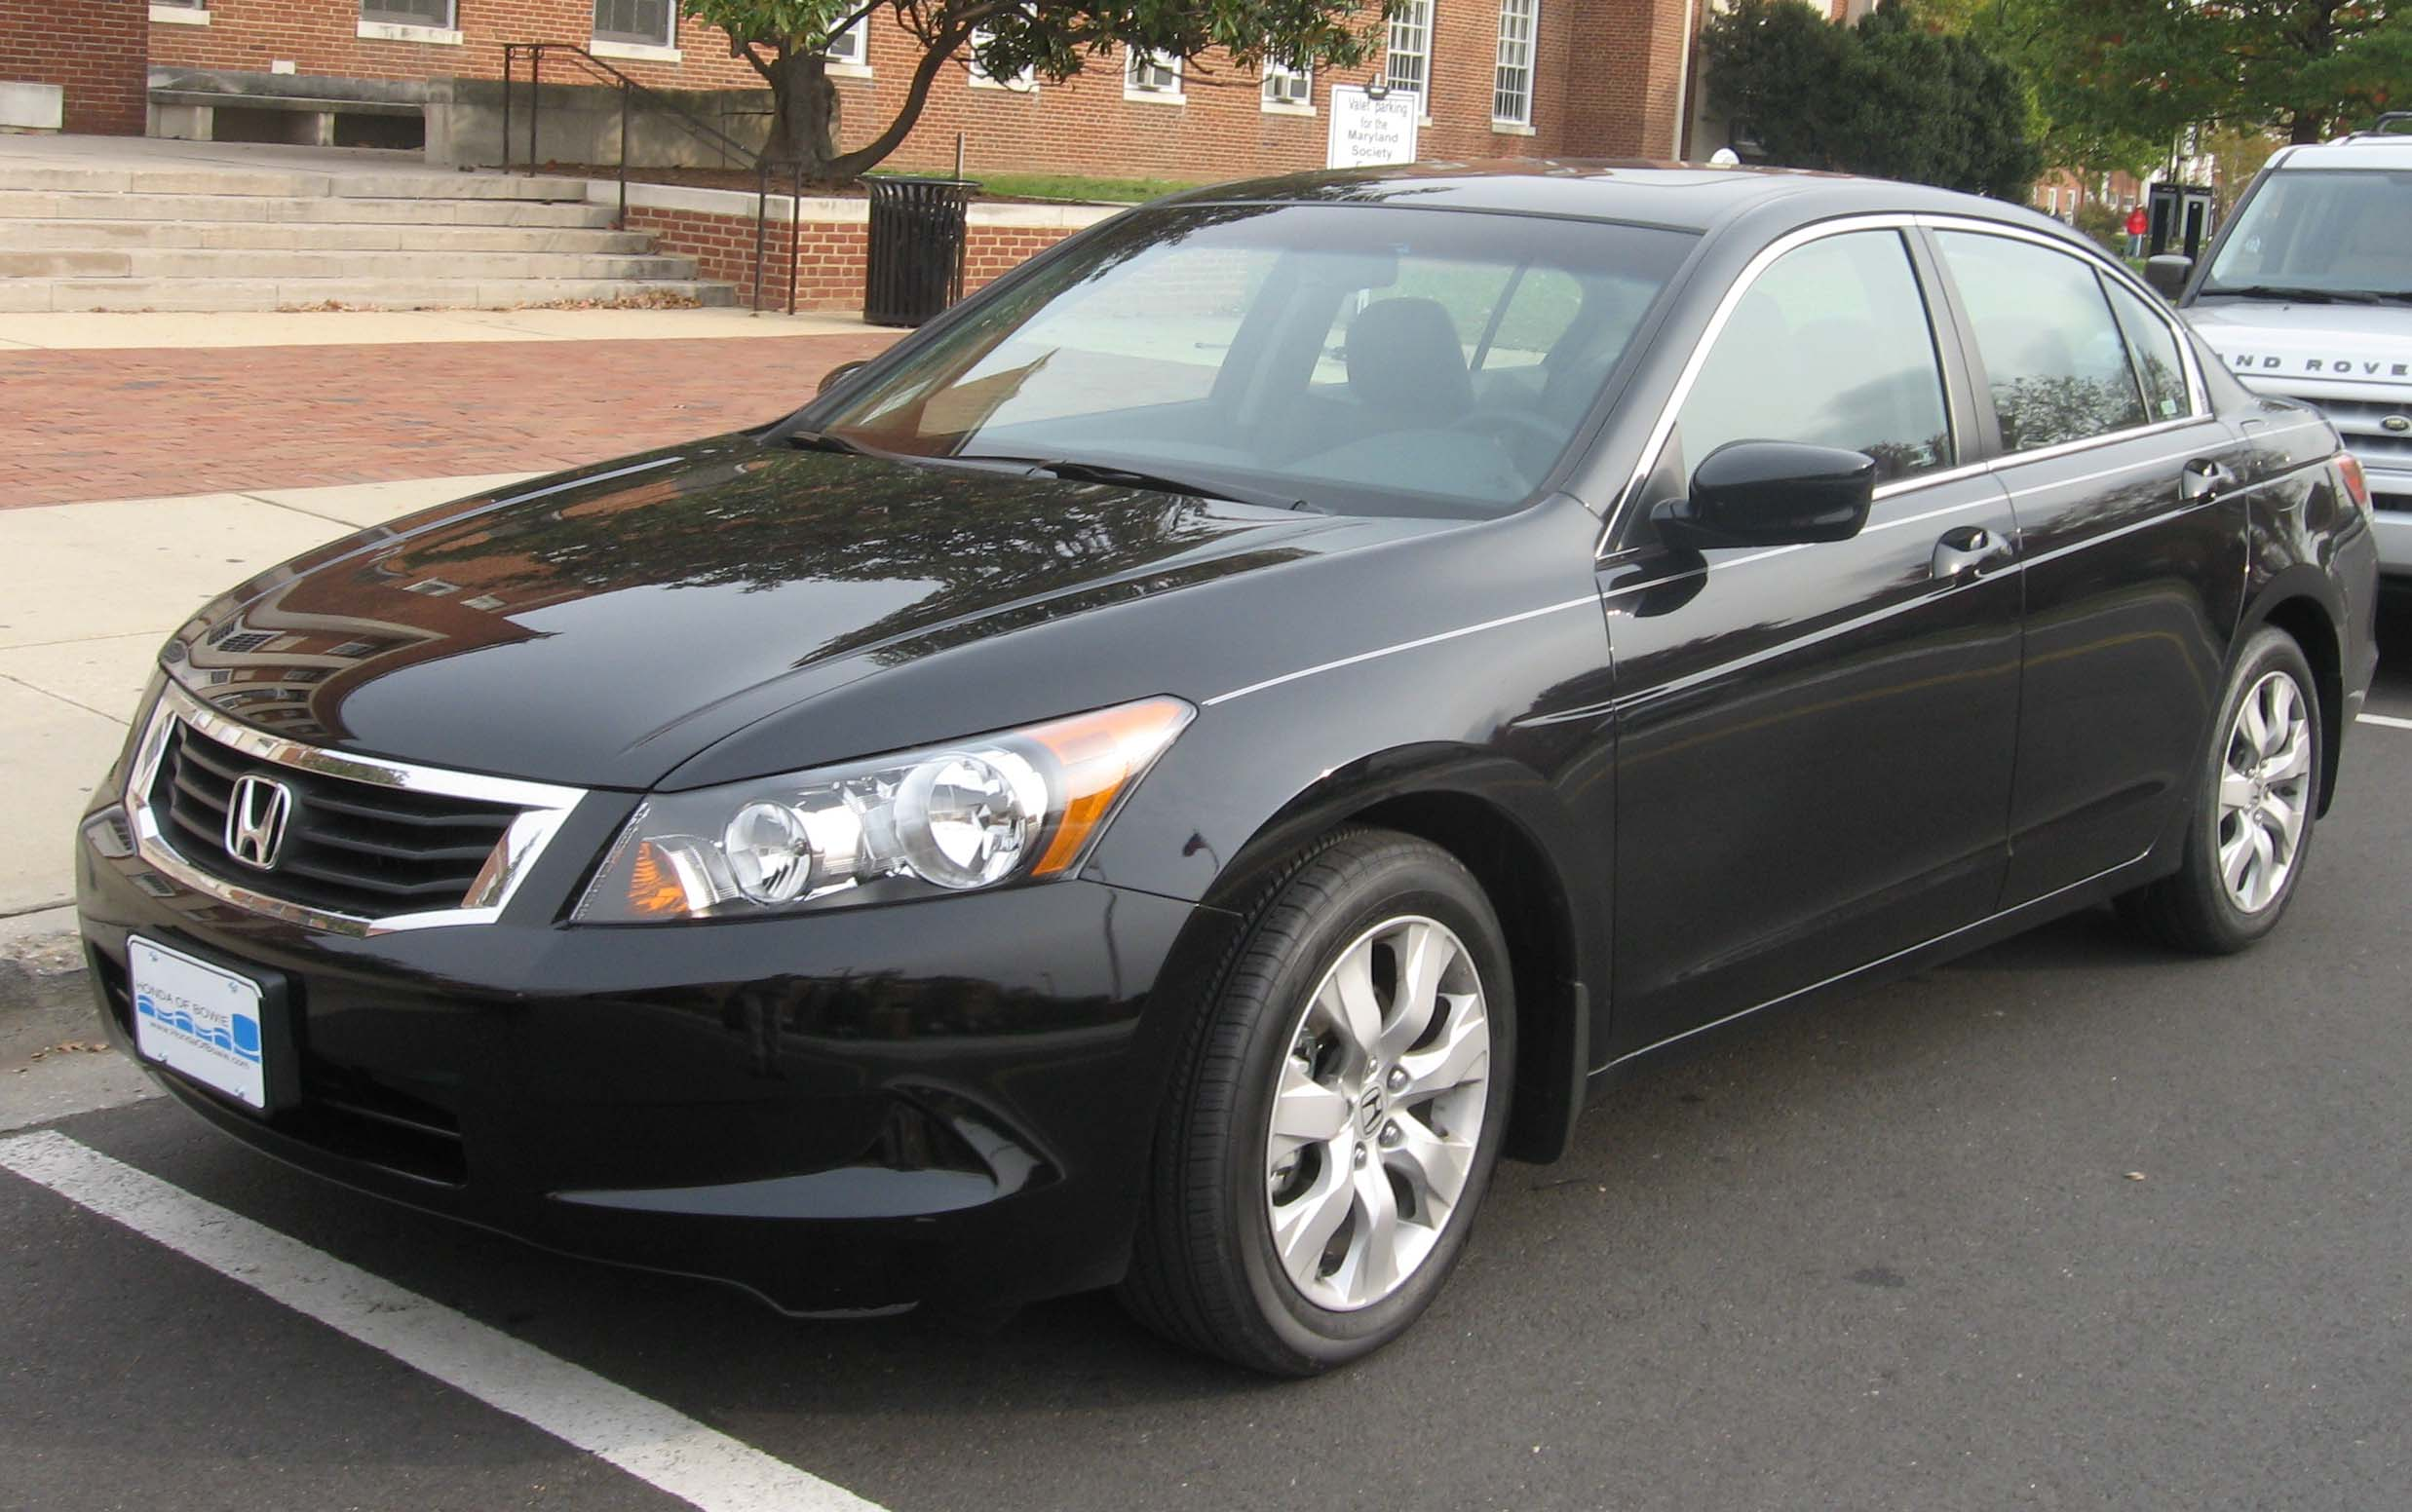 File 08 Honda Accord Sedan Jpg Wikimedia Commons